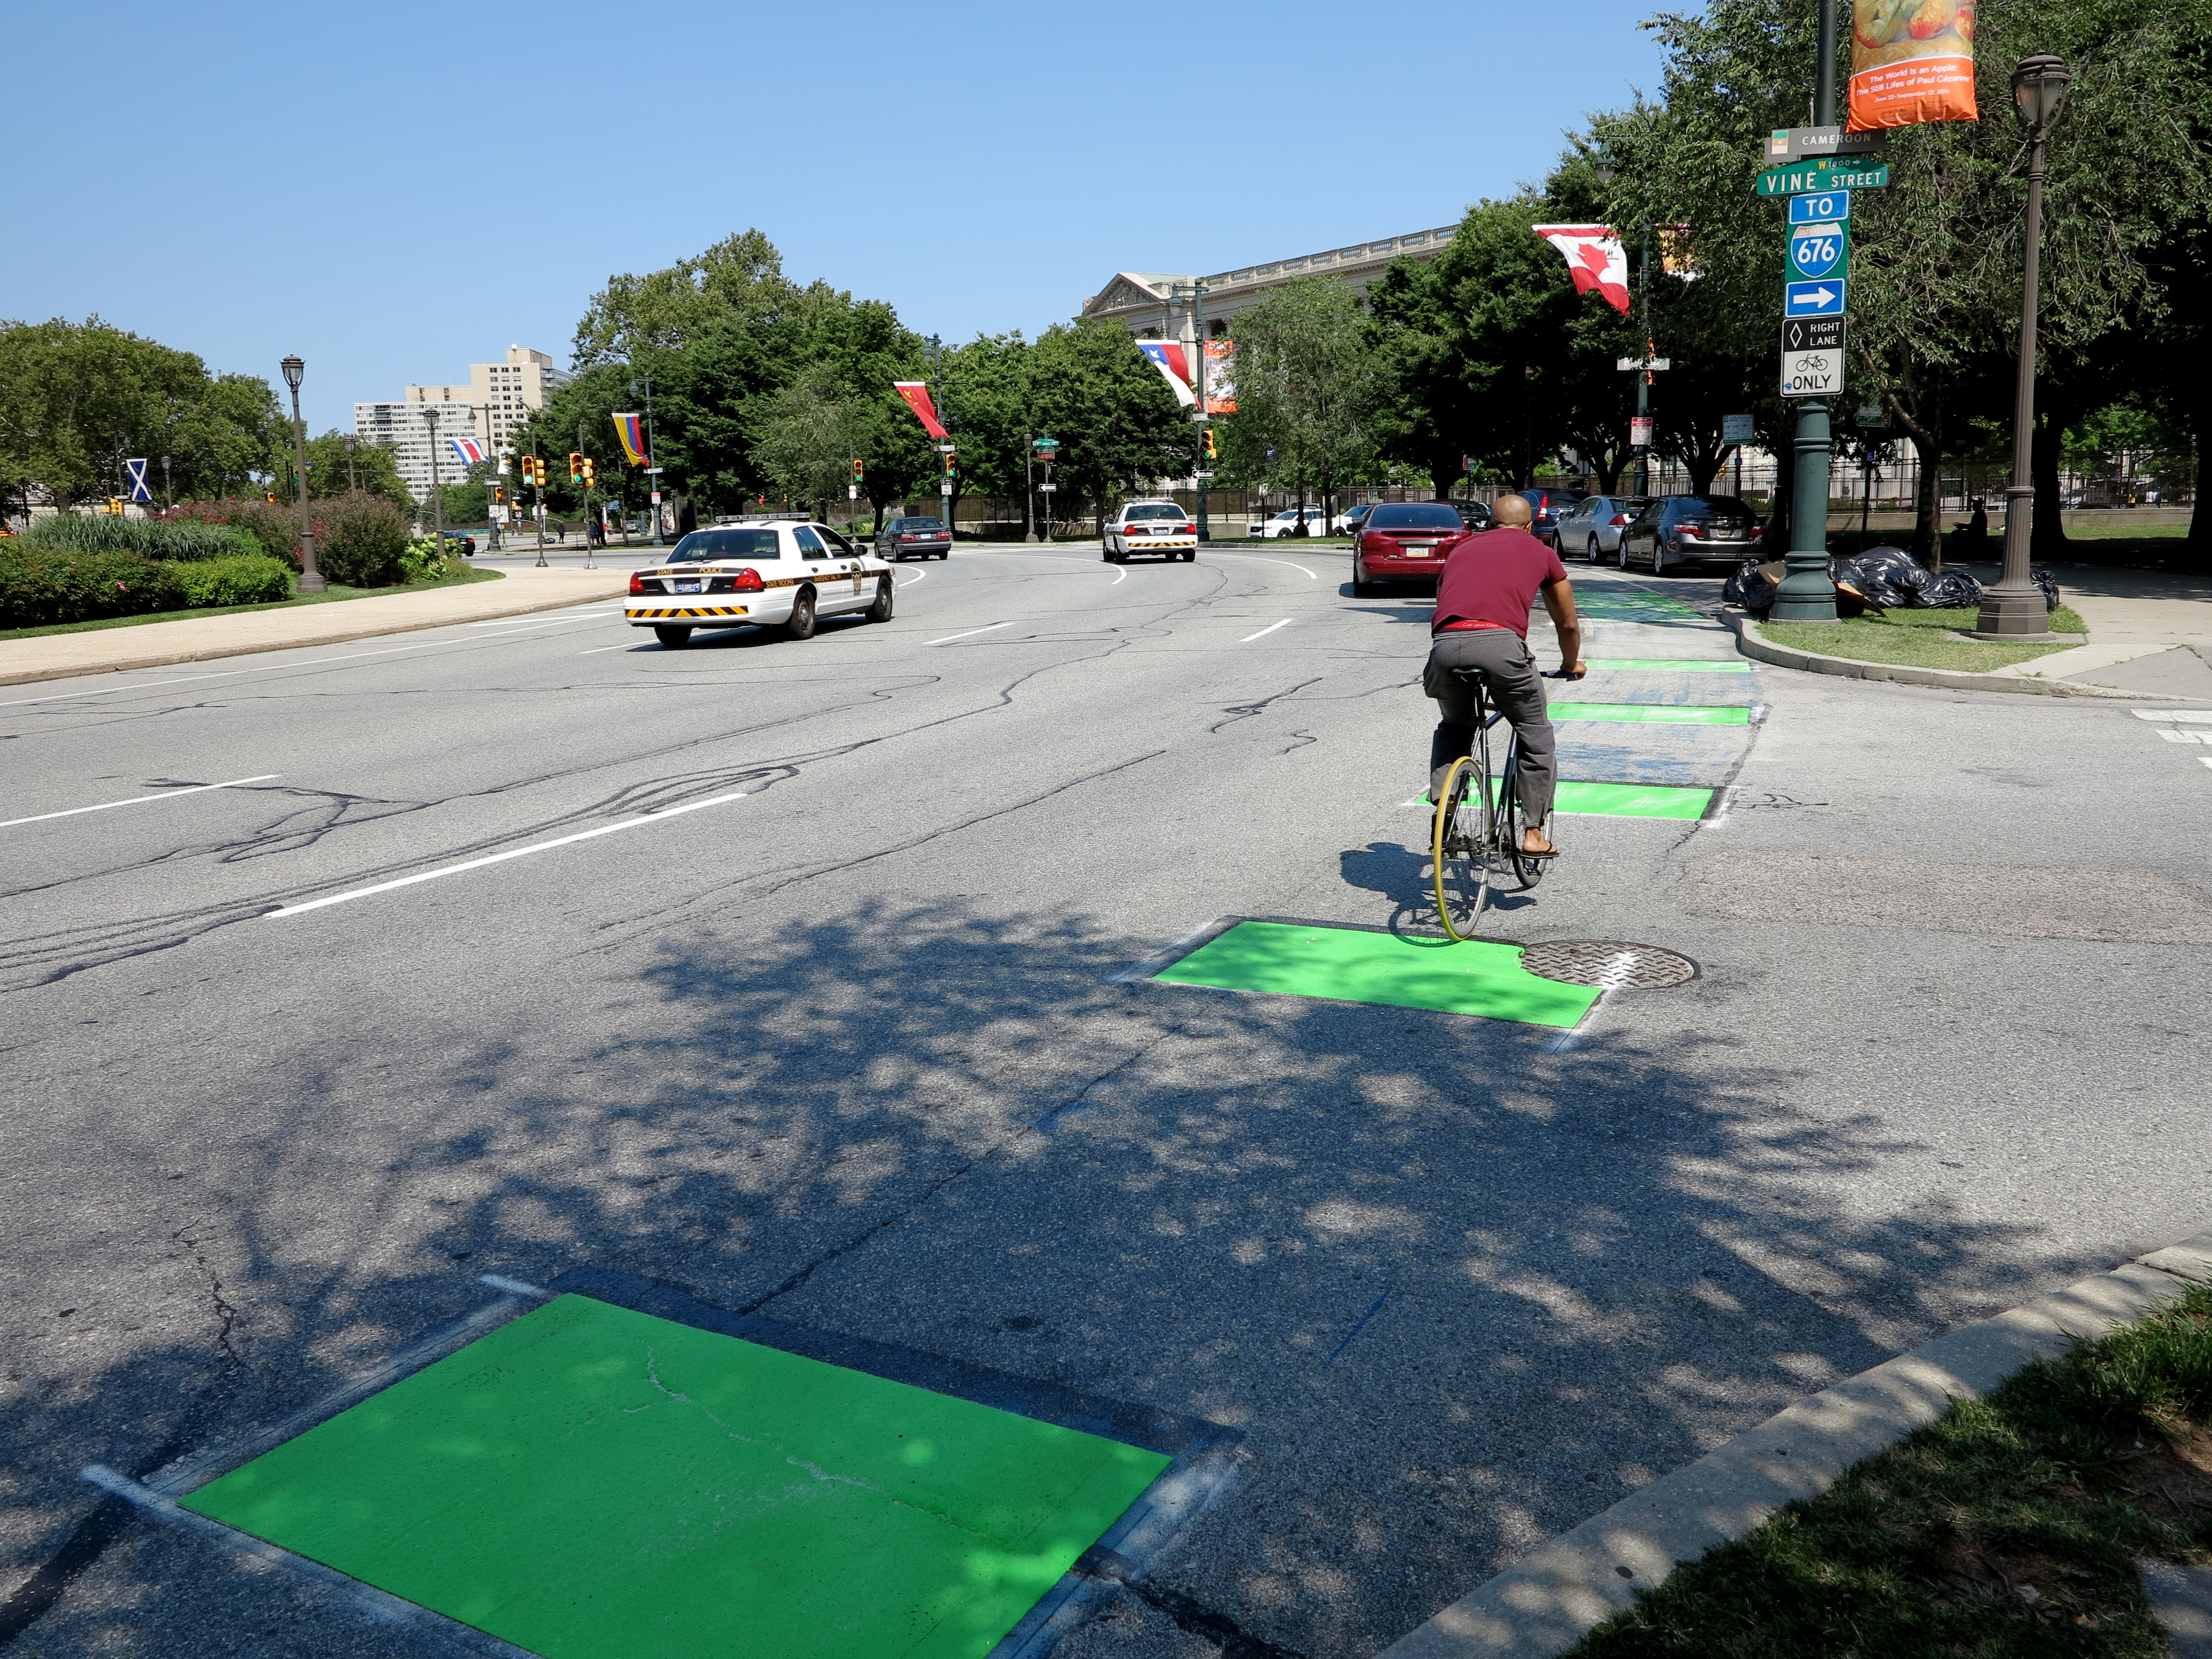 Fresh green paint for a bike/car conflict zone on Logan Circle